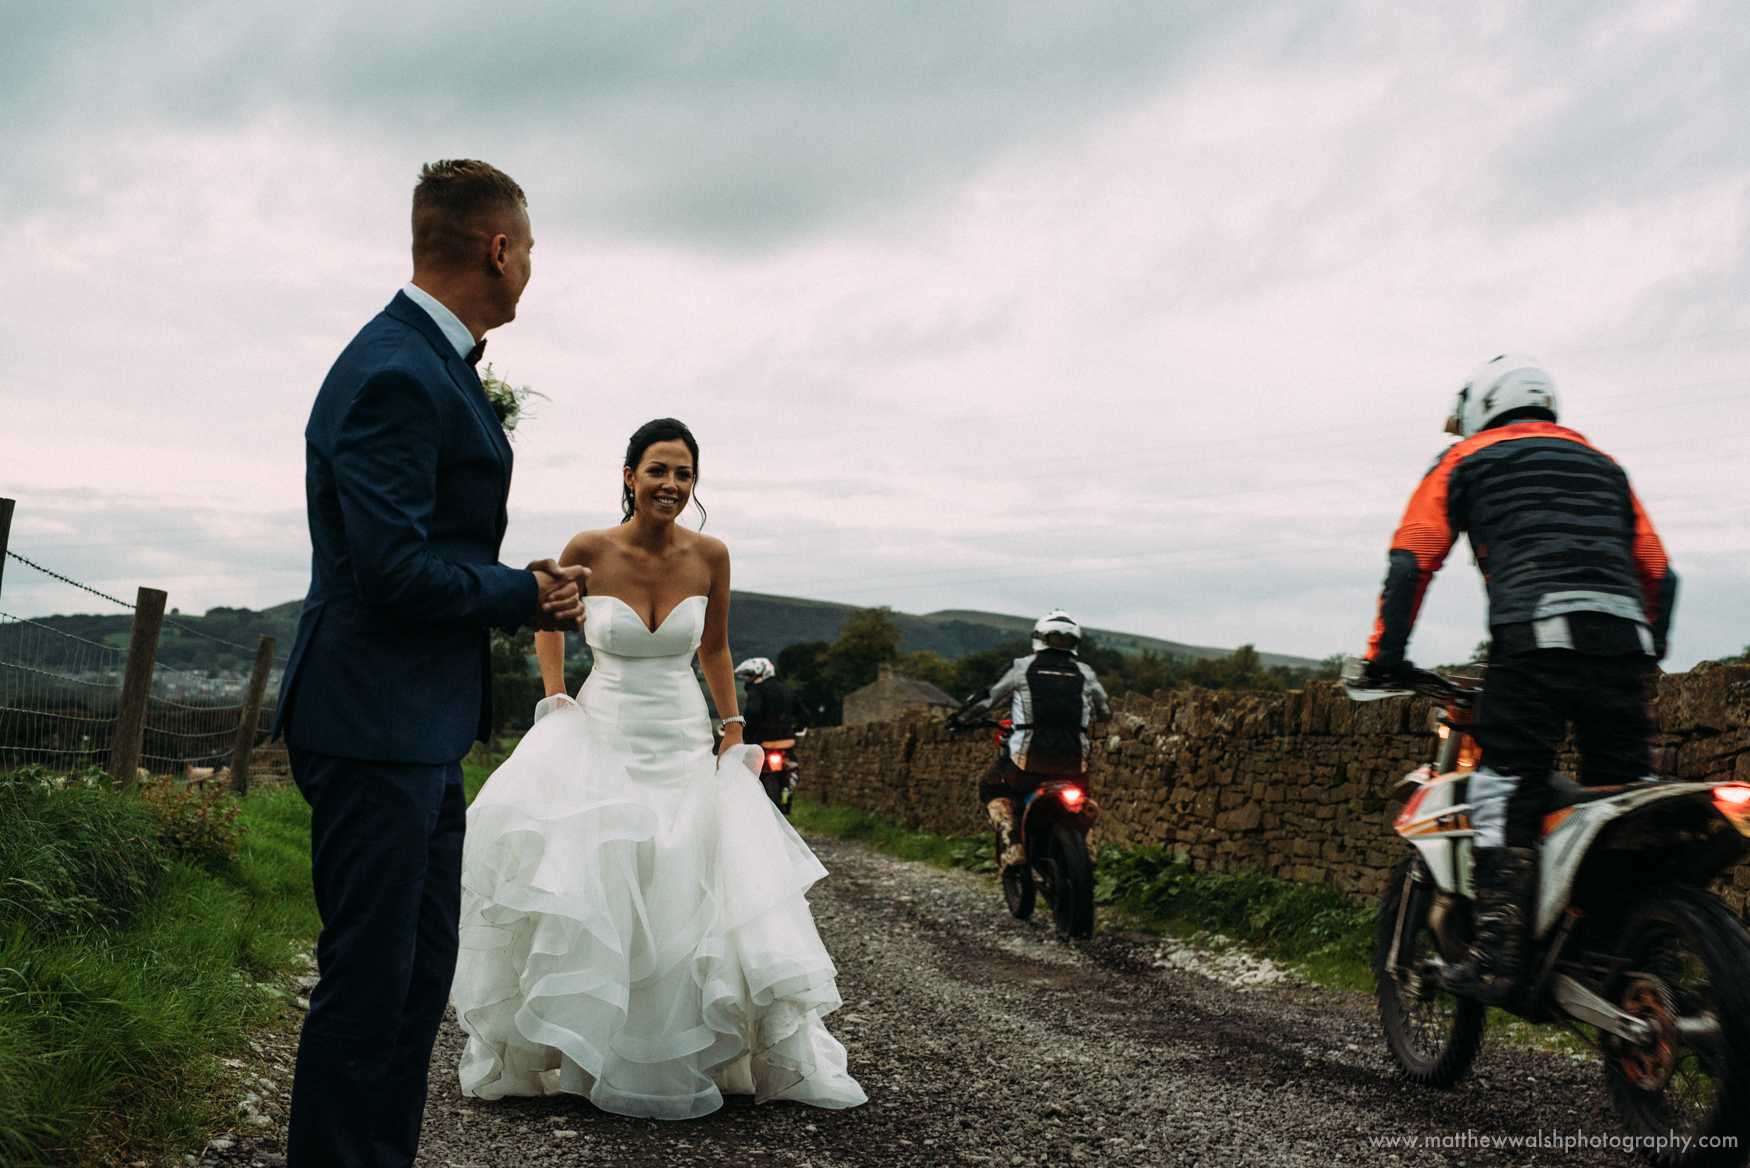 A natural reportage moment as motorbikes pass the bride and groom